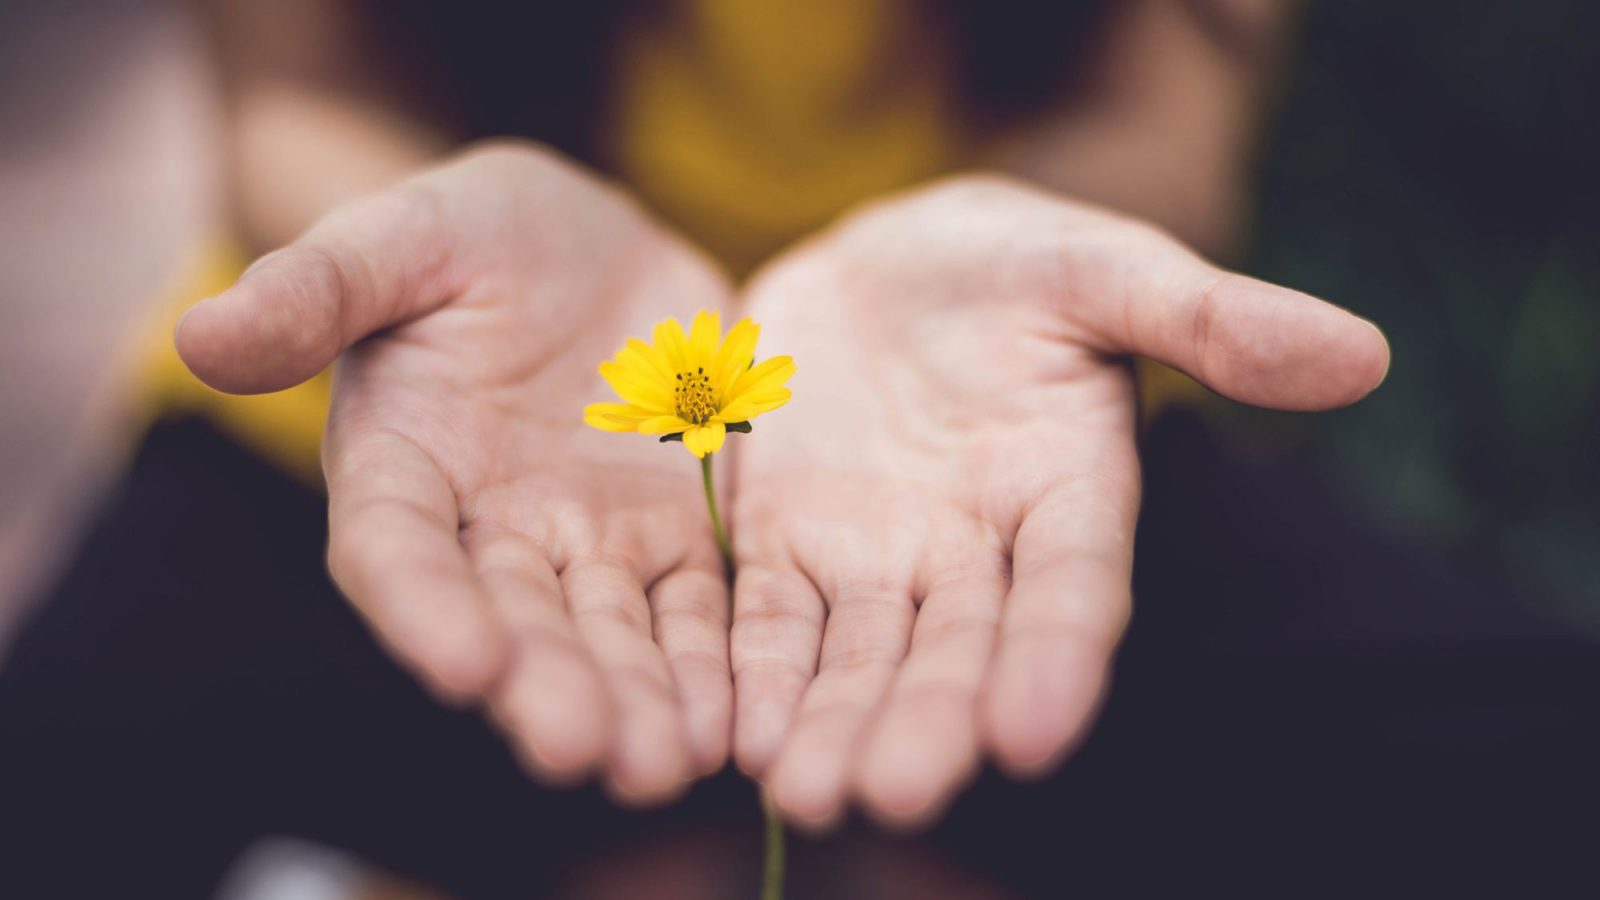 A pair of hands hold a single flower upright with both hands open.